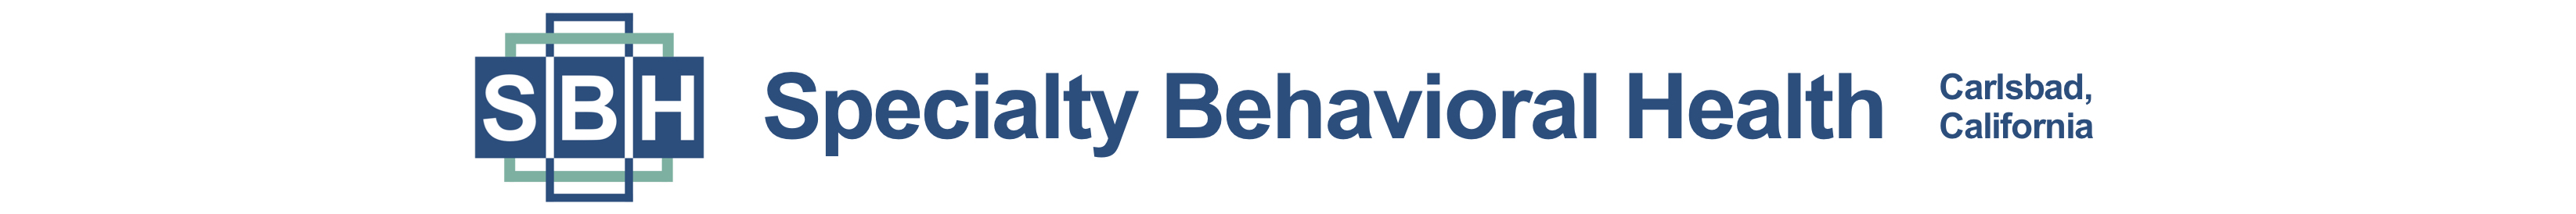 Specialty Behavioral Health